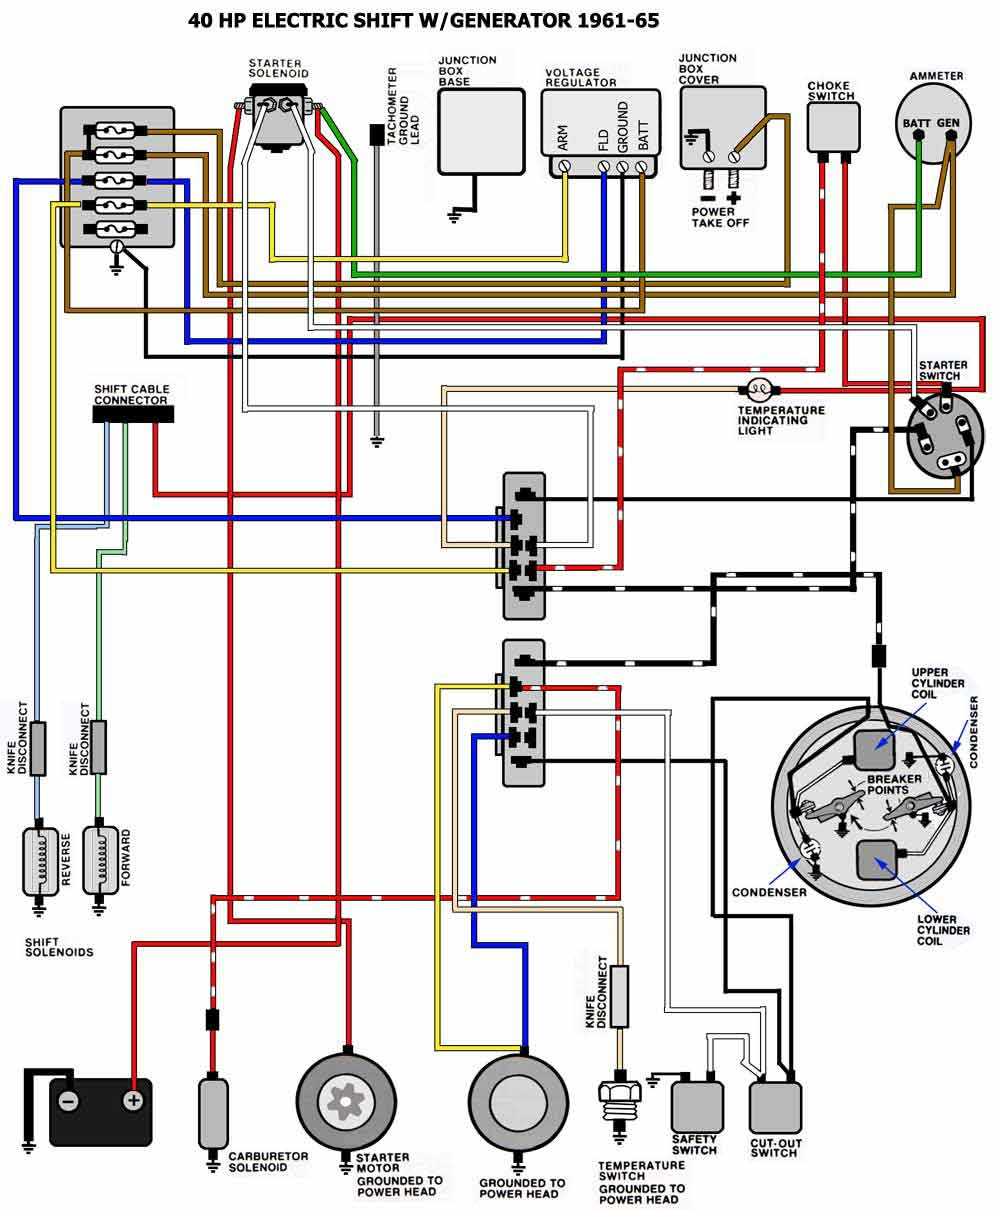 Cmc Power Tilt And Trim Wiring Diagram from wholefoodsonabudget.com